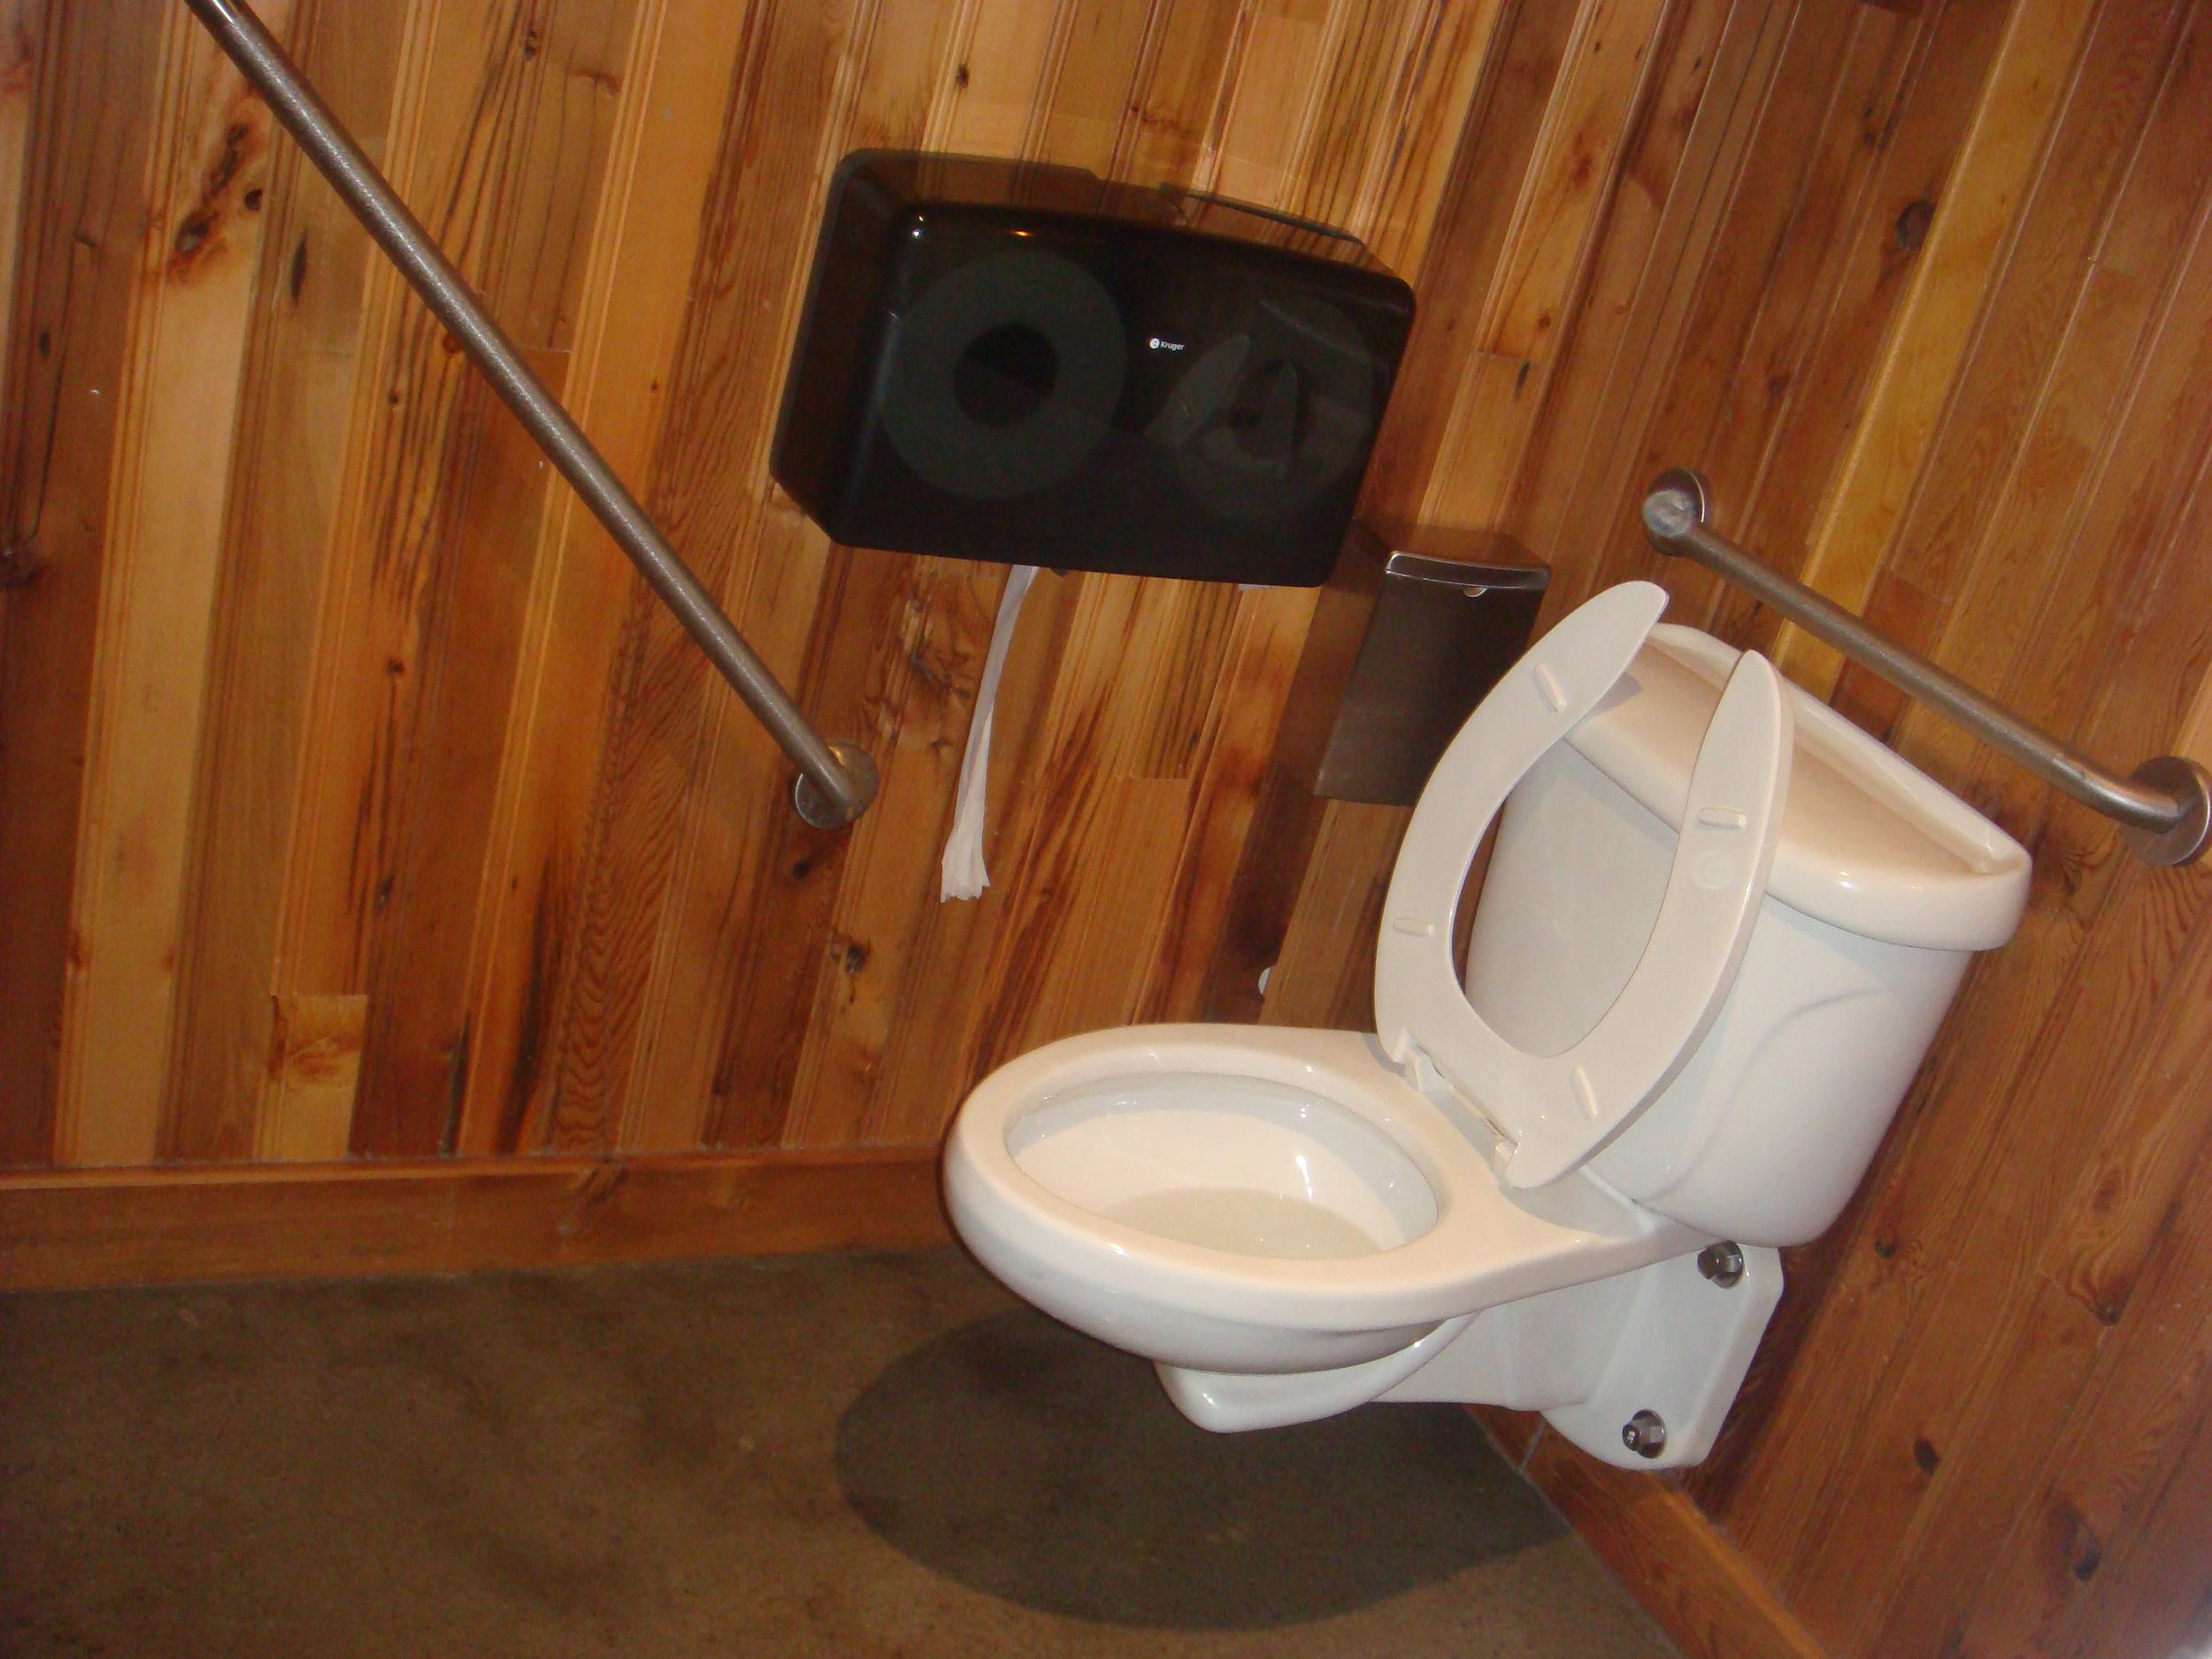 Picture of accessible washroom. Two grab bars featured.